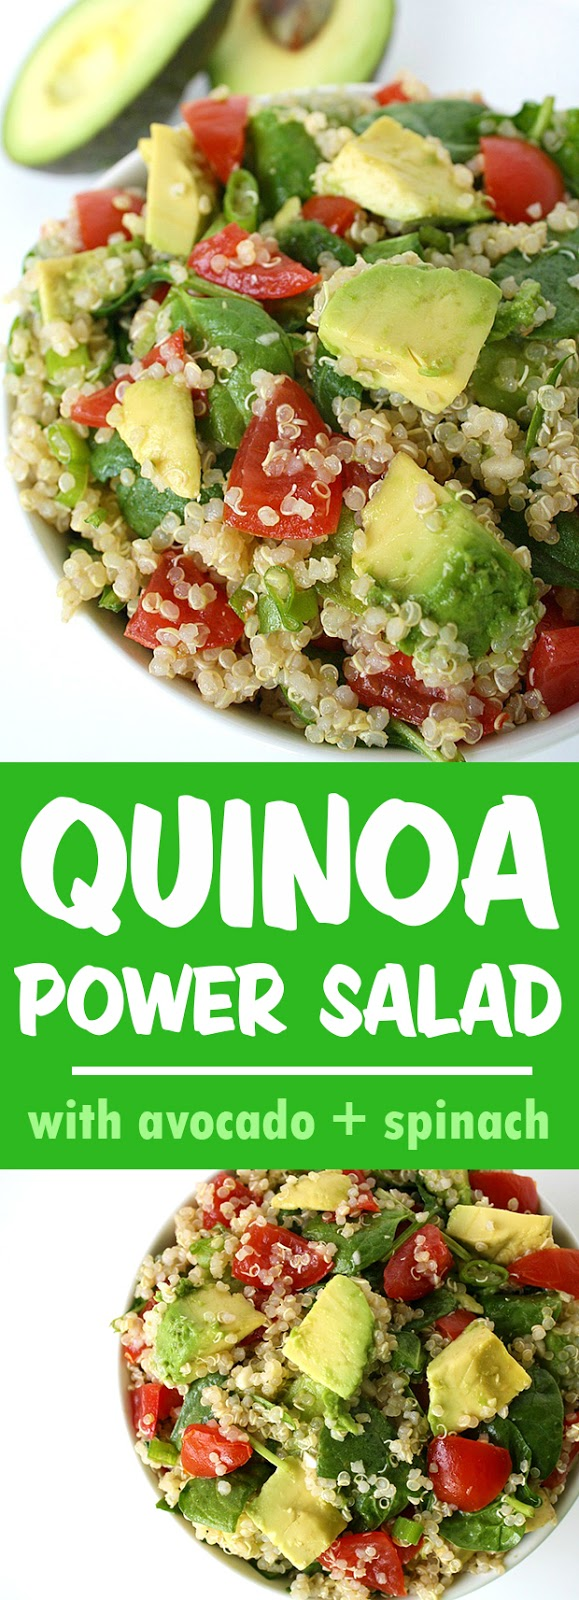 Quinoa Power Salad collage